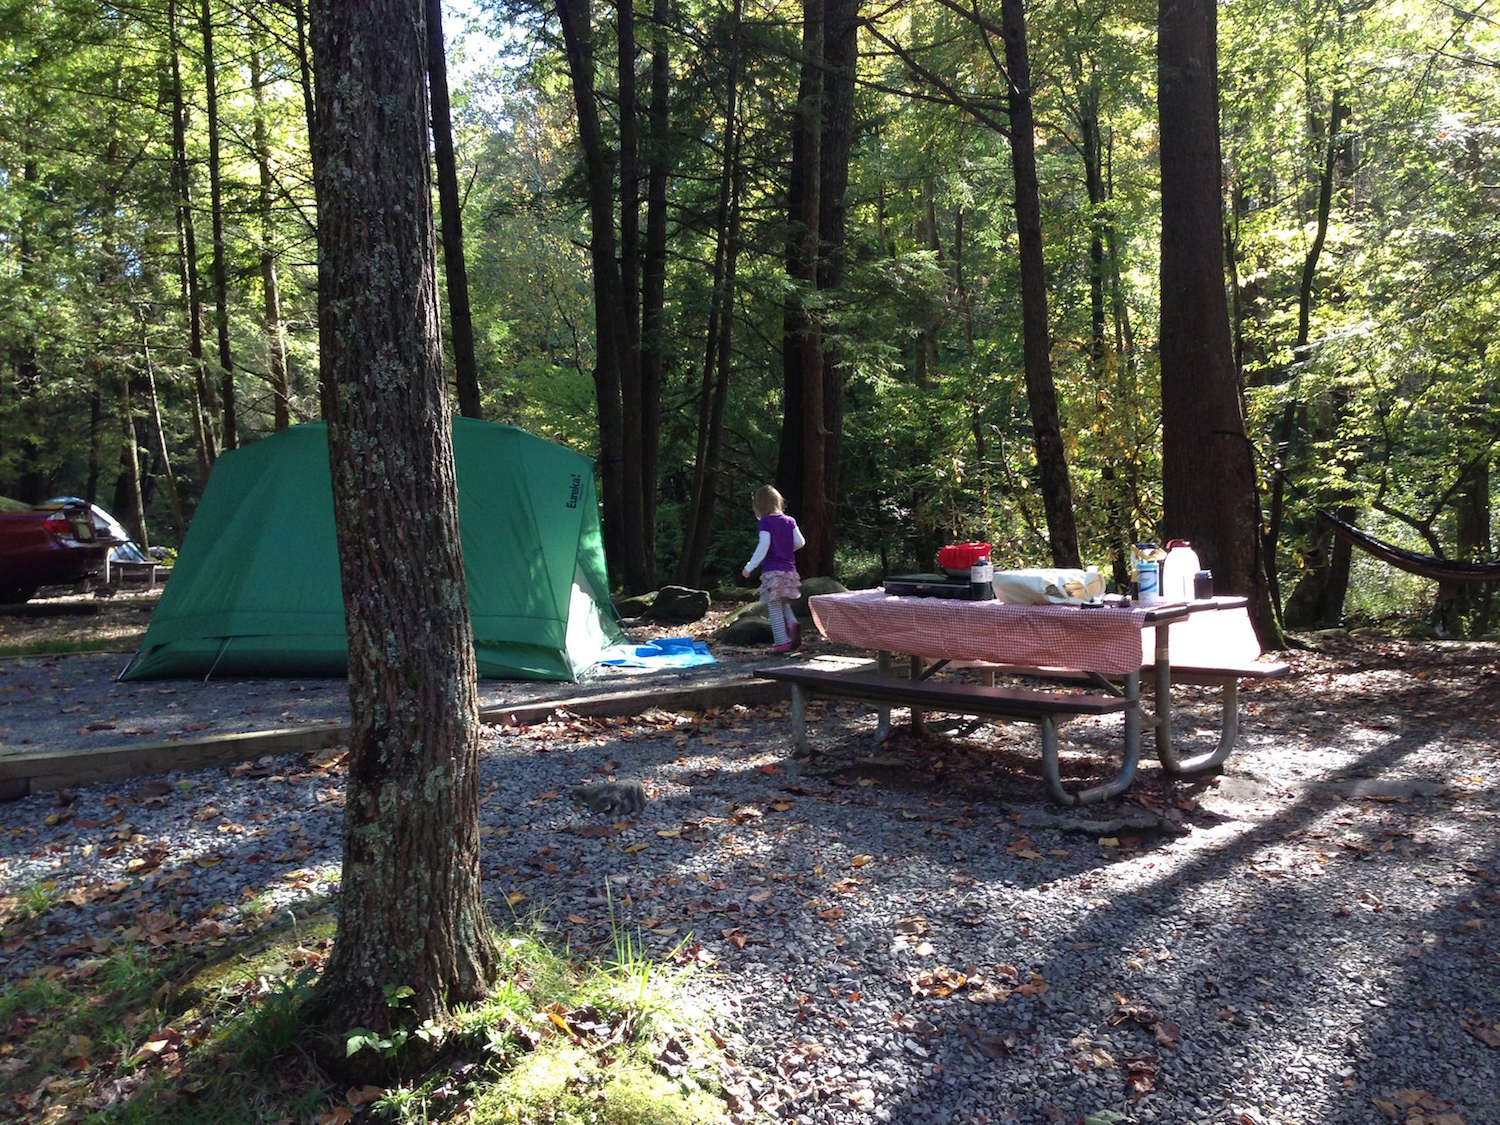 5 Great Campgrounds Within 2 hours of Knoxville, Tennessee